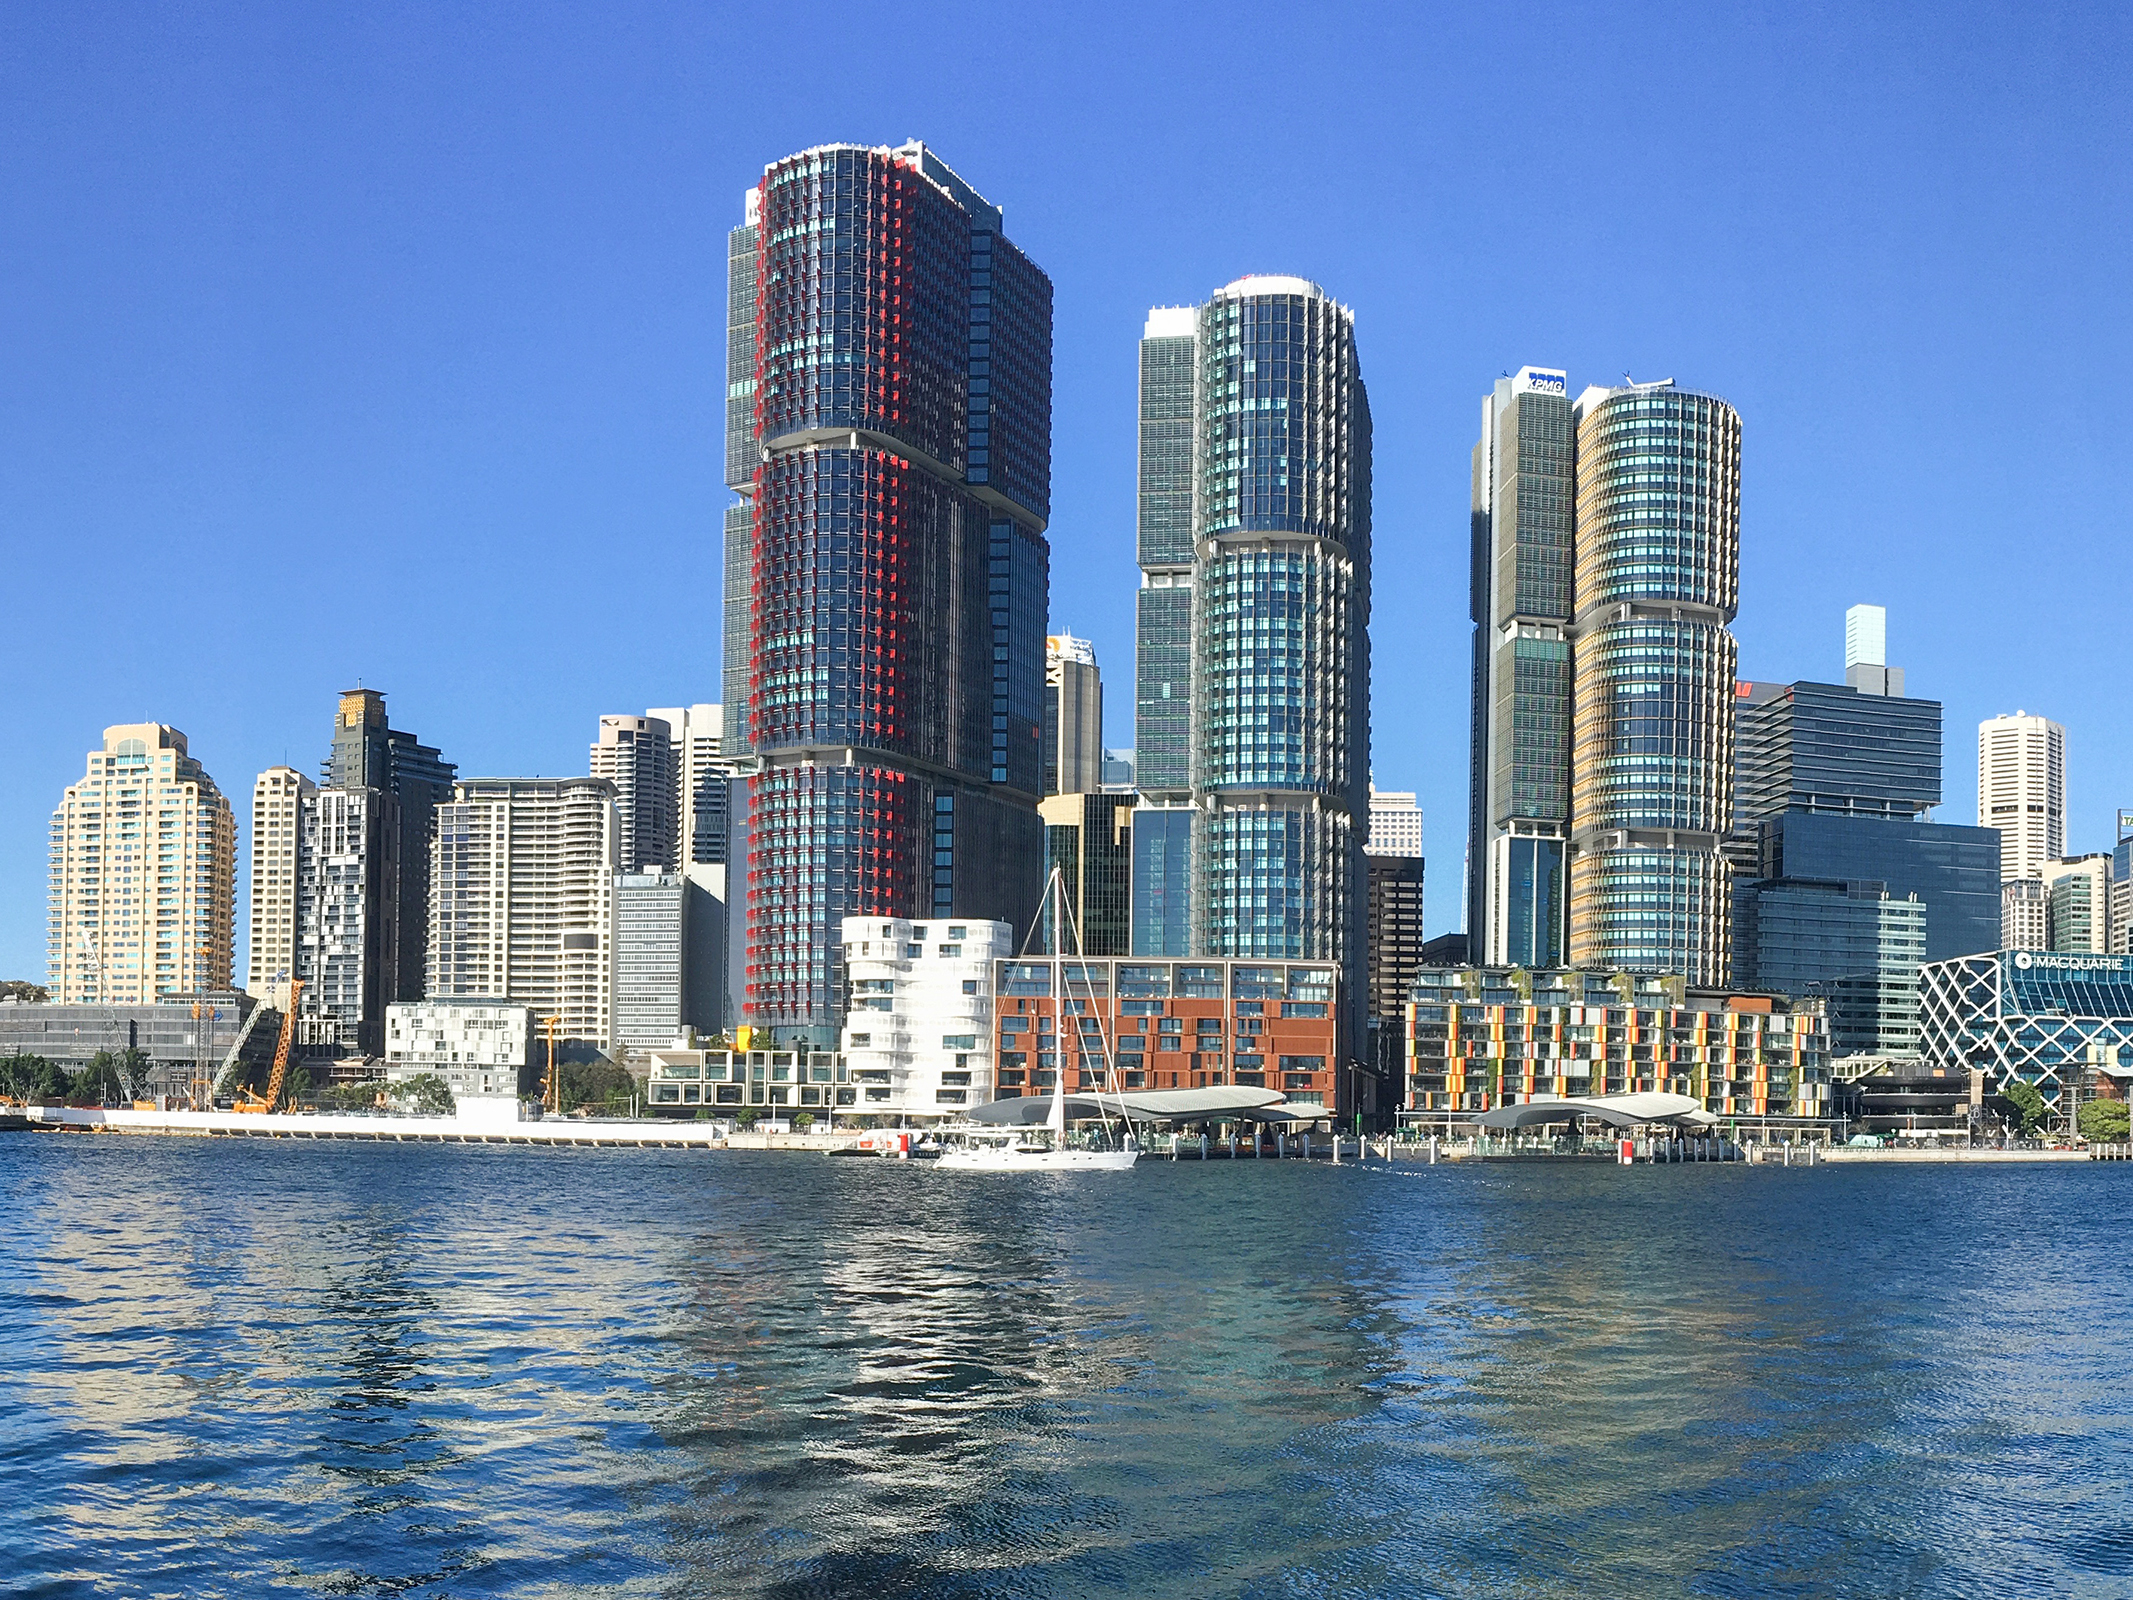 Sustainable commercial buildings at Barangaroo, Sydney. Image: Wikimedia Commons